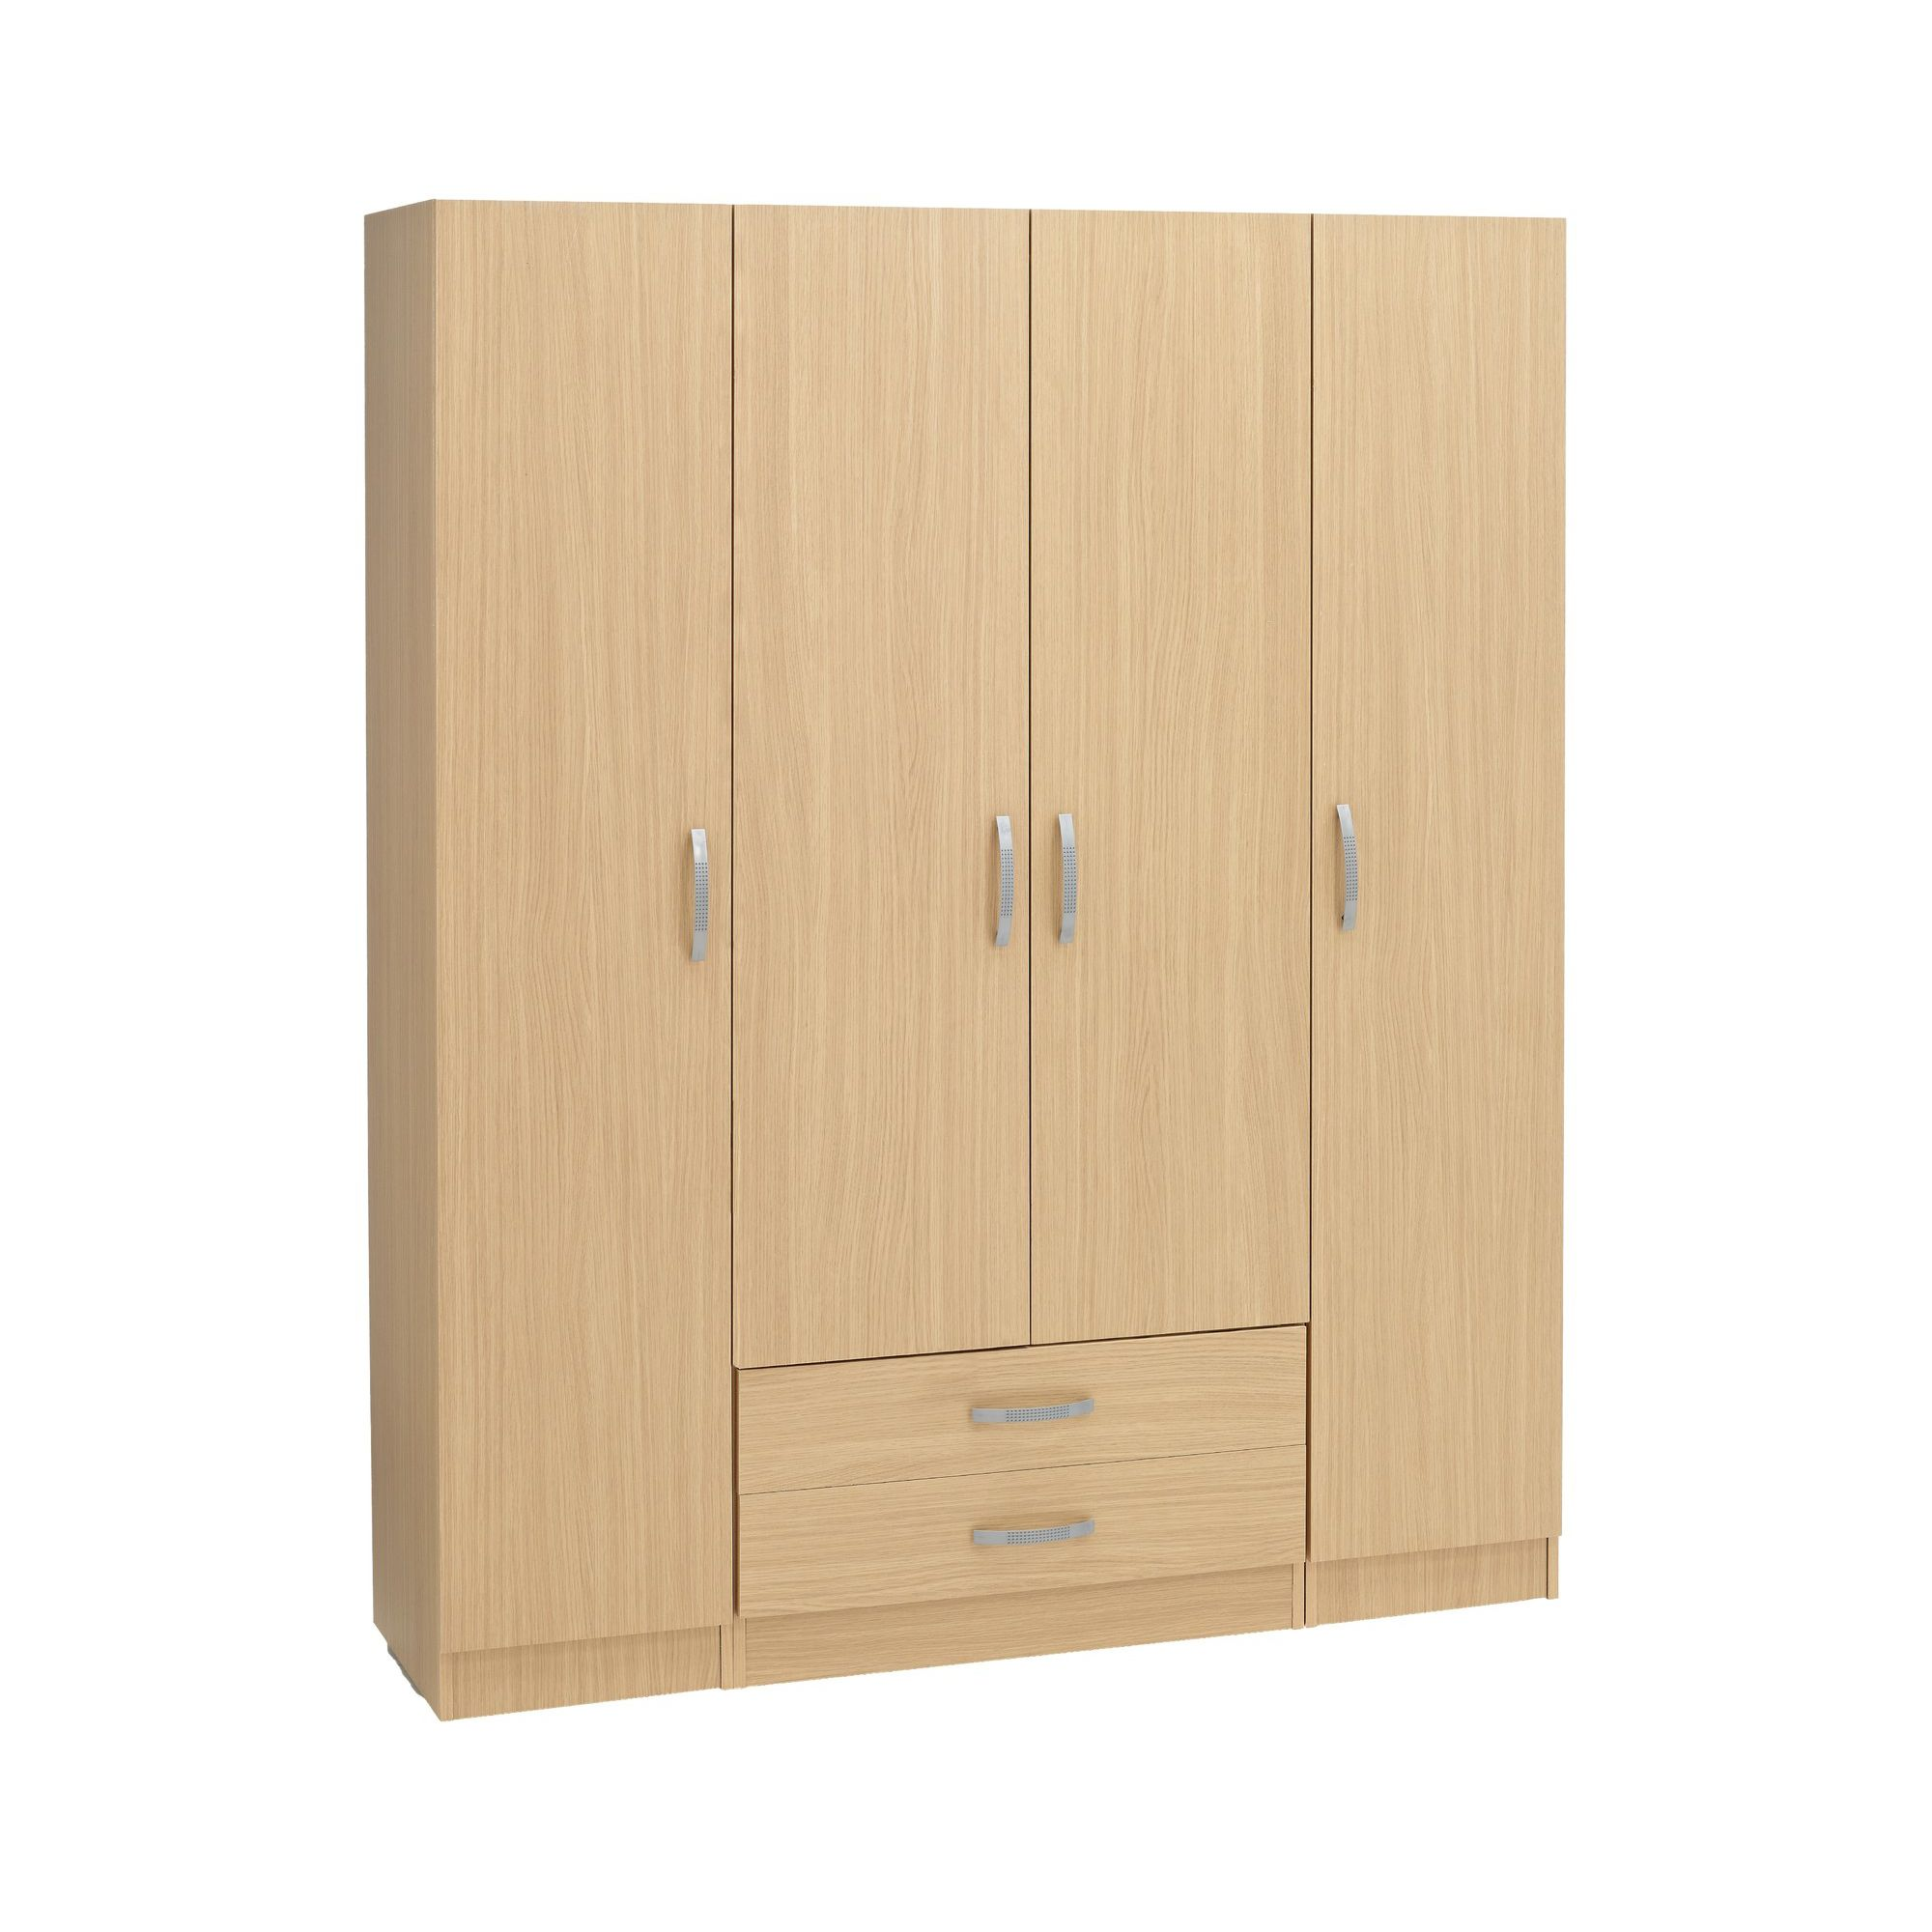 Ideal Furniture Budapest 4 Door Wardrobe - White at Tesco Direct